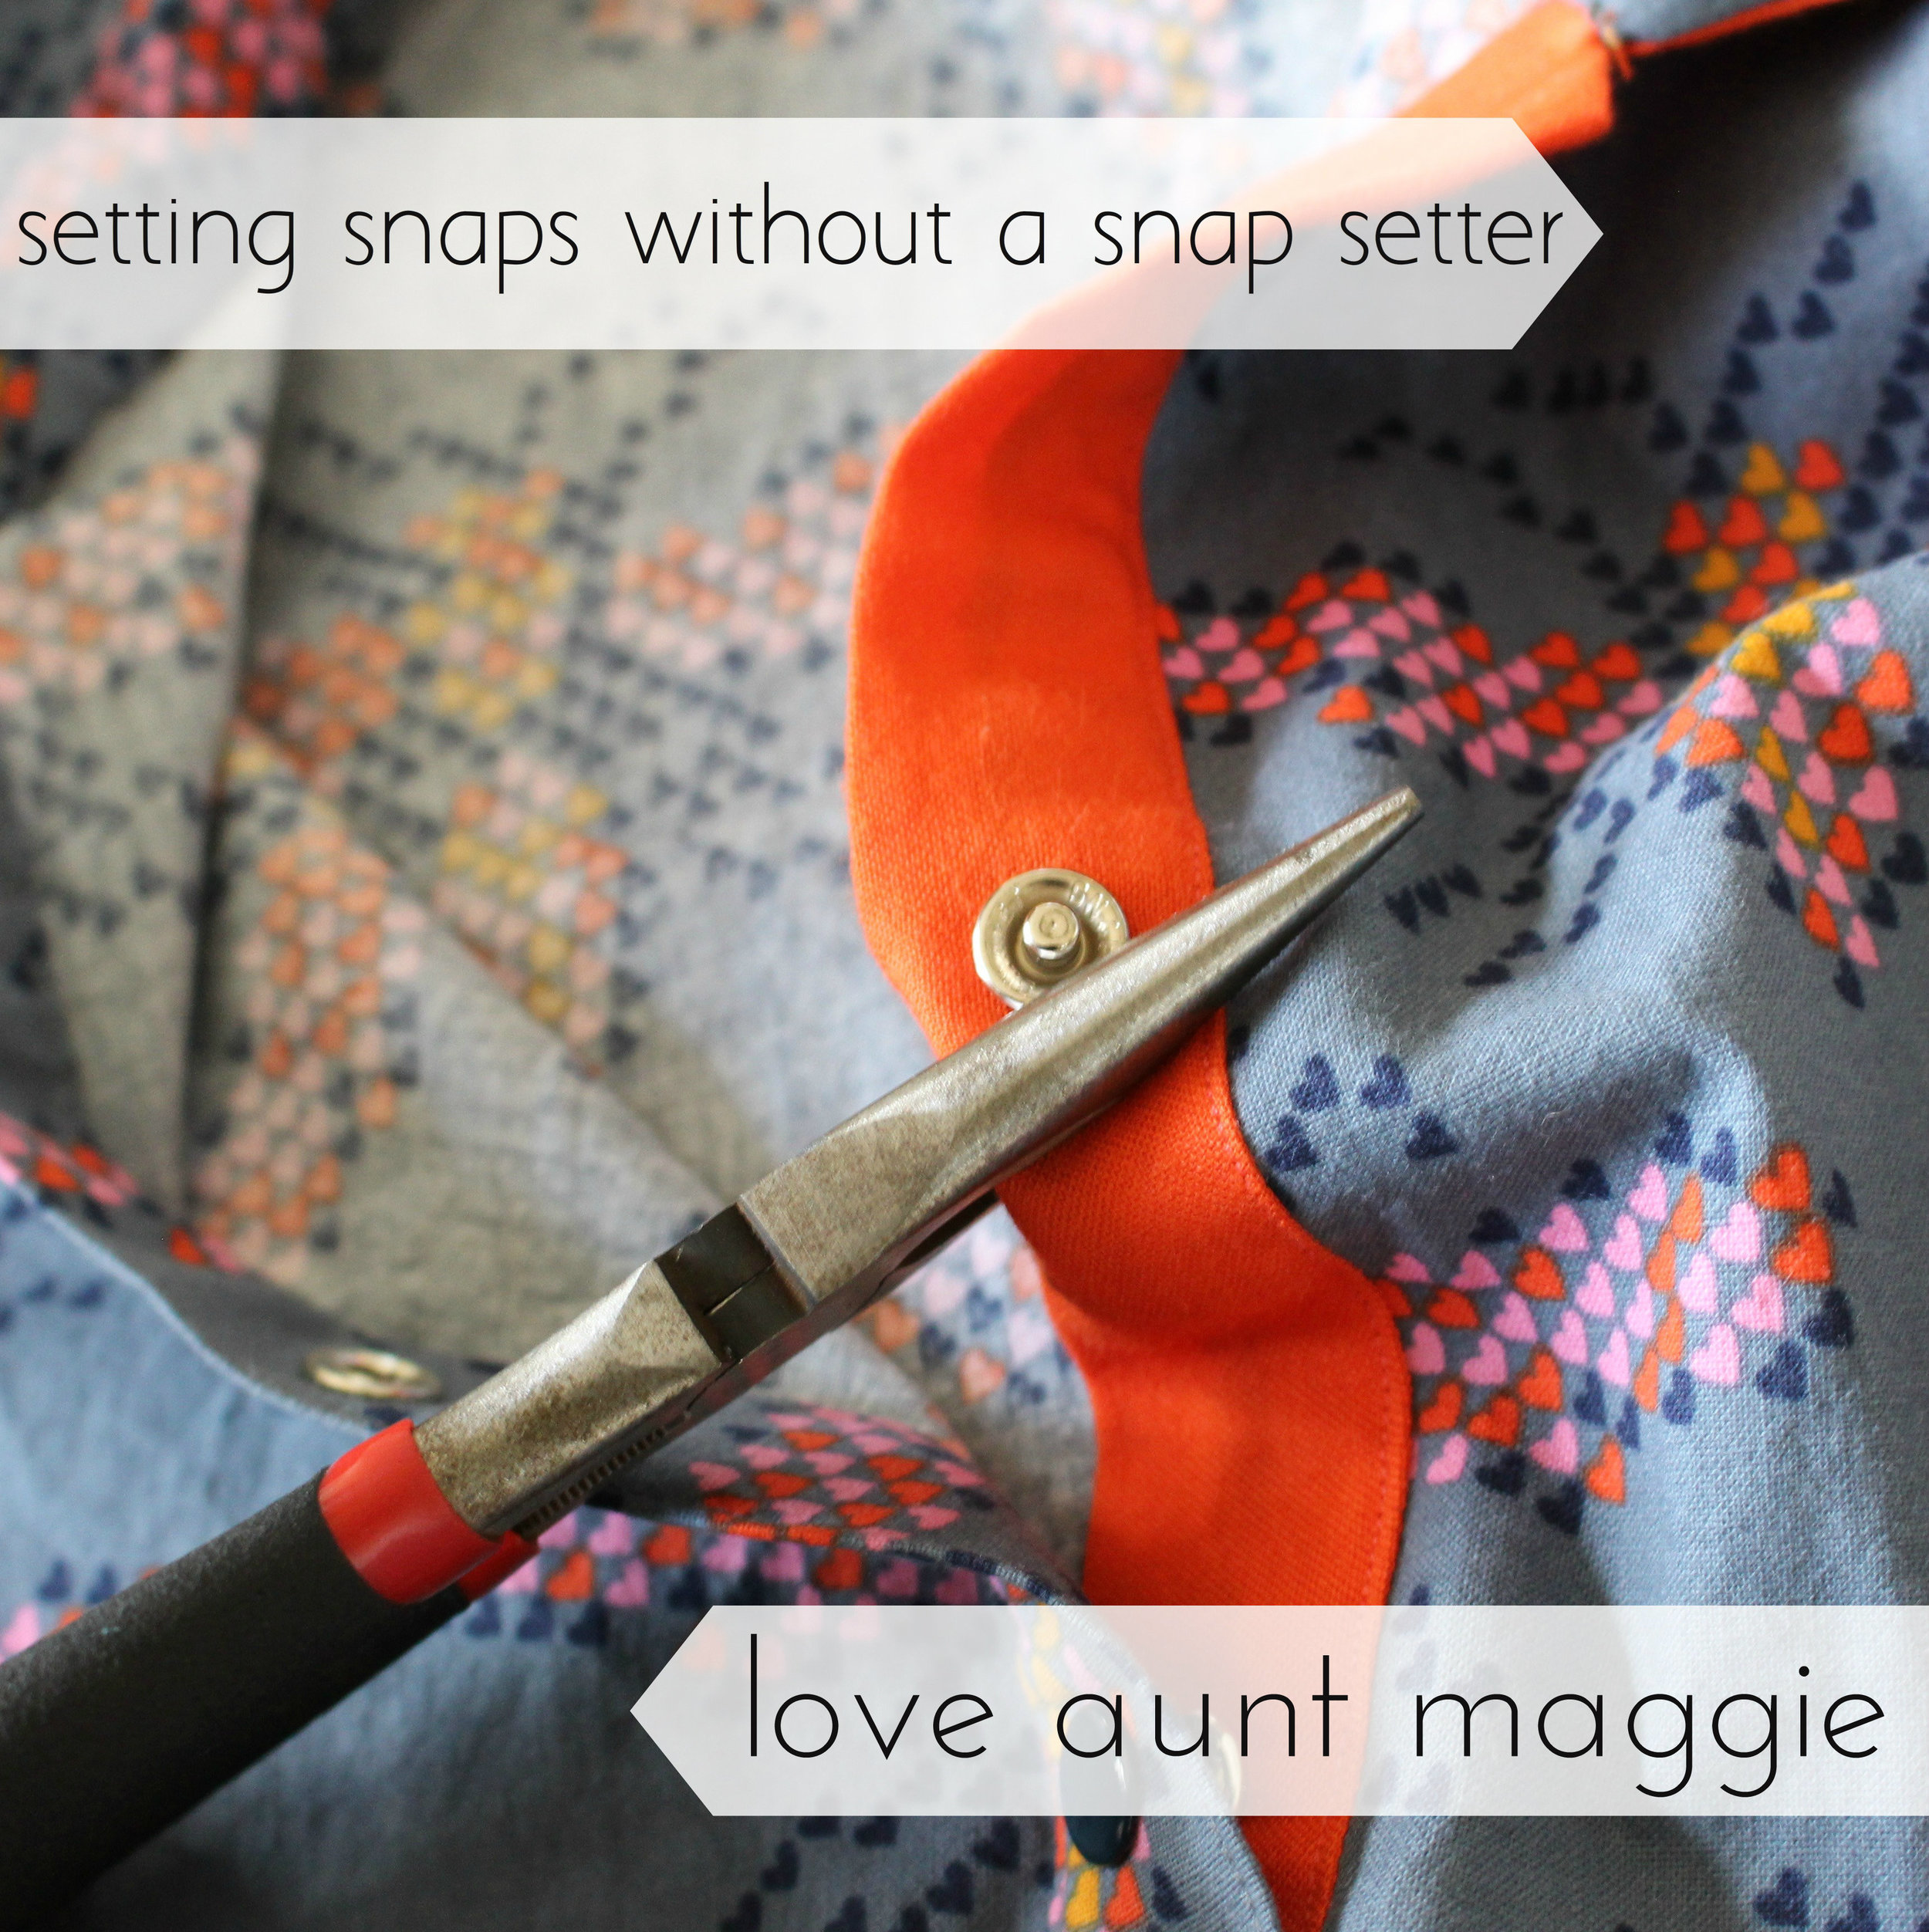 love aunt maggie | setting snaps without a snap setter